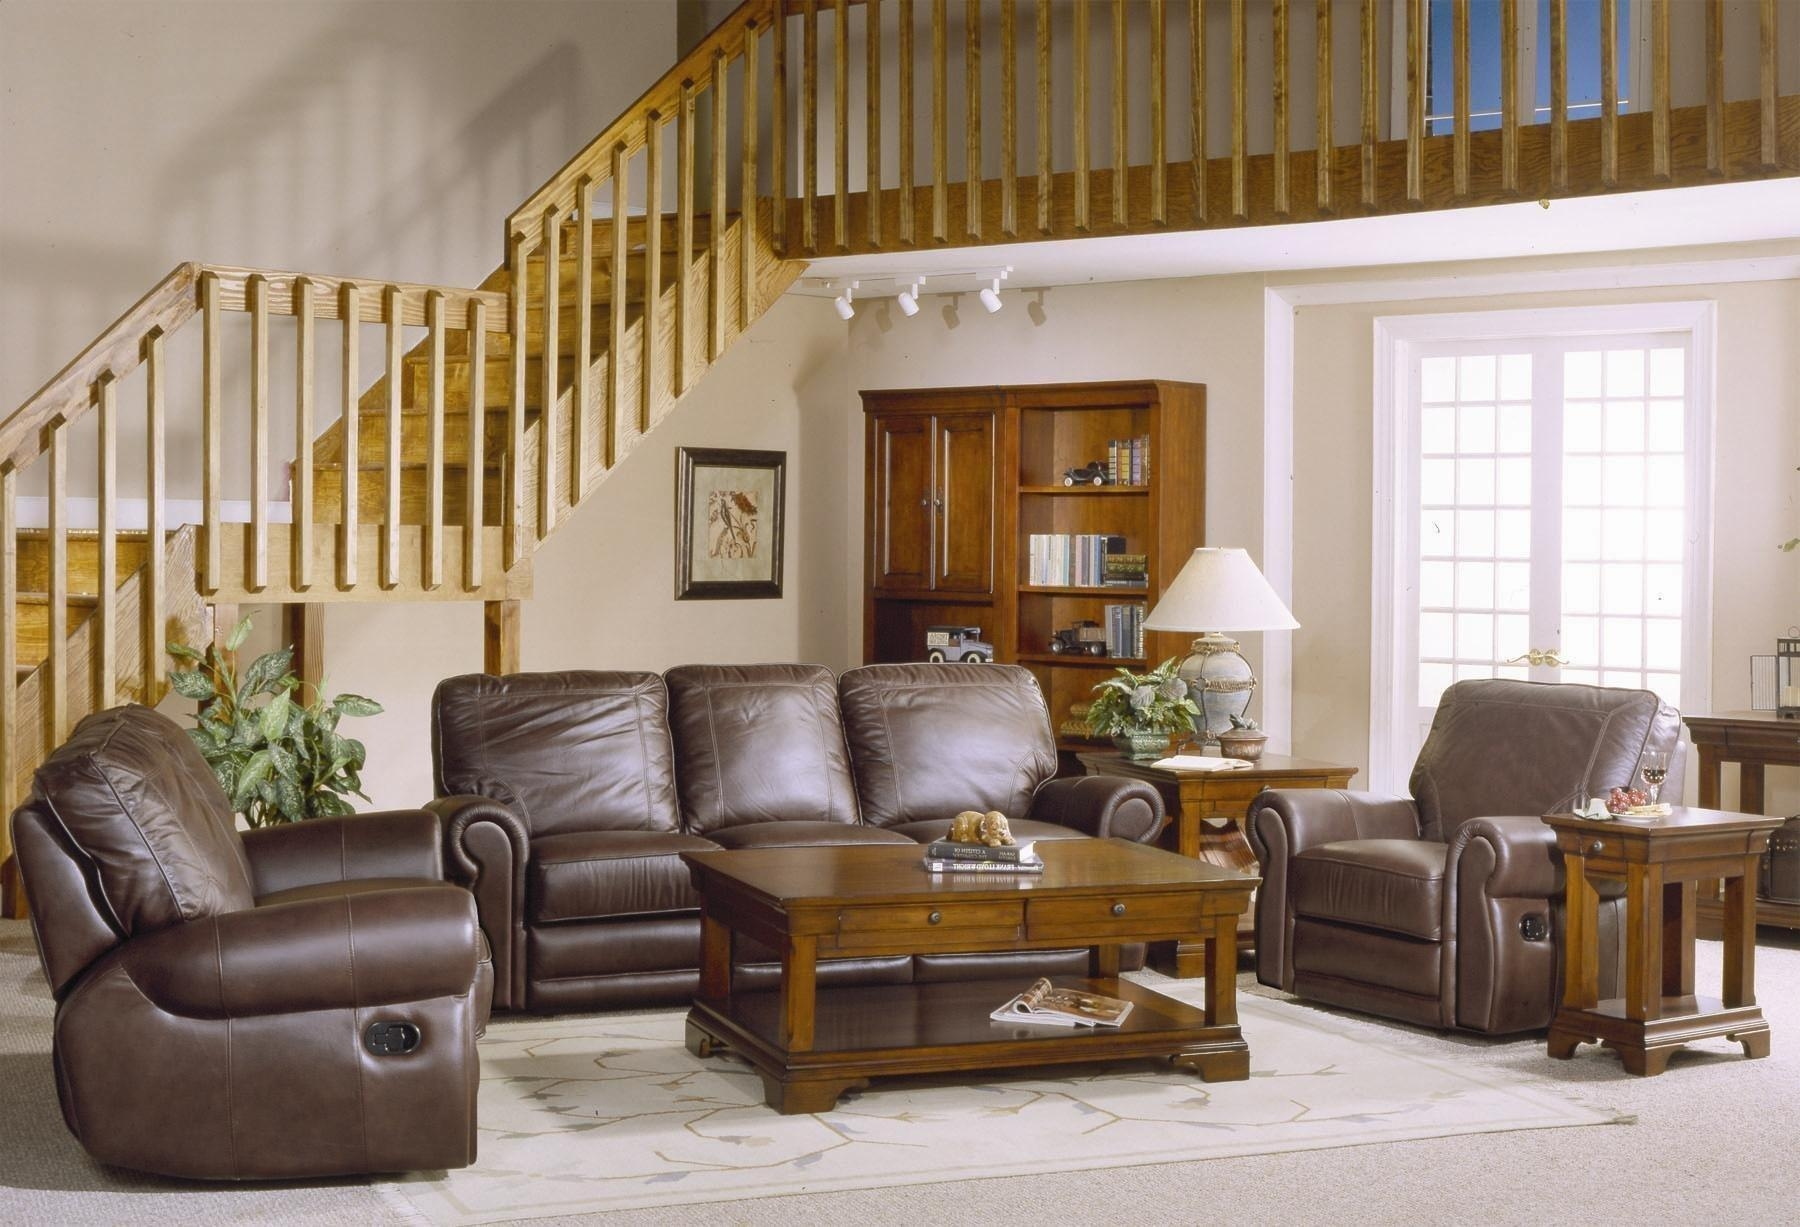 country plaid sofa sets how to fix cat scratch on leather style sofas and loveseats modern